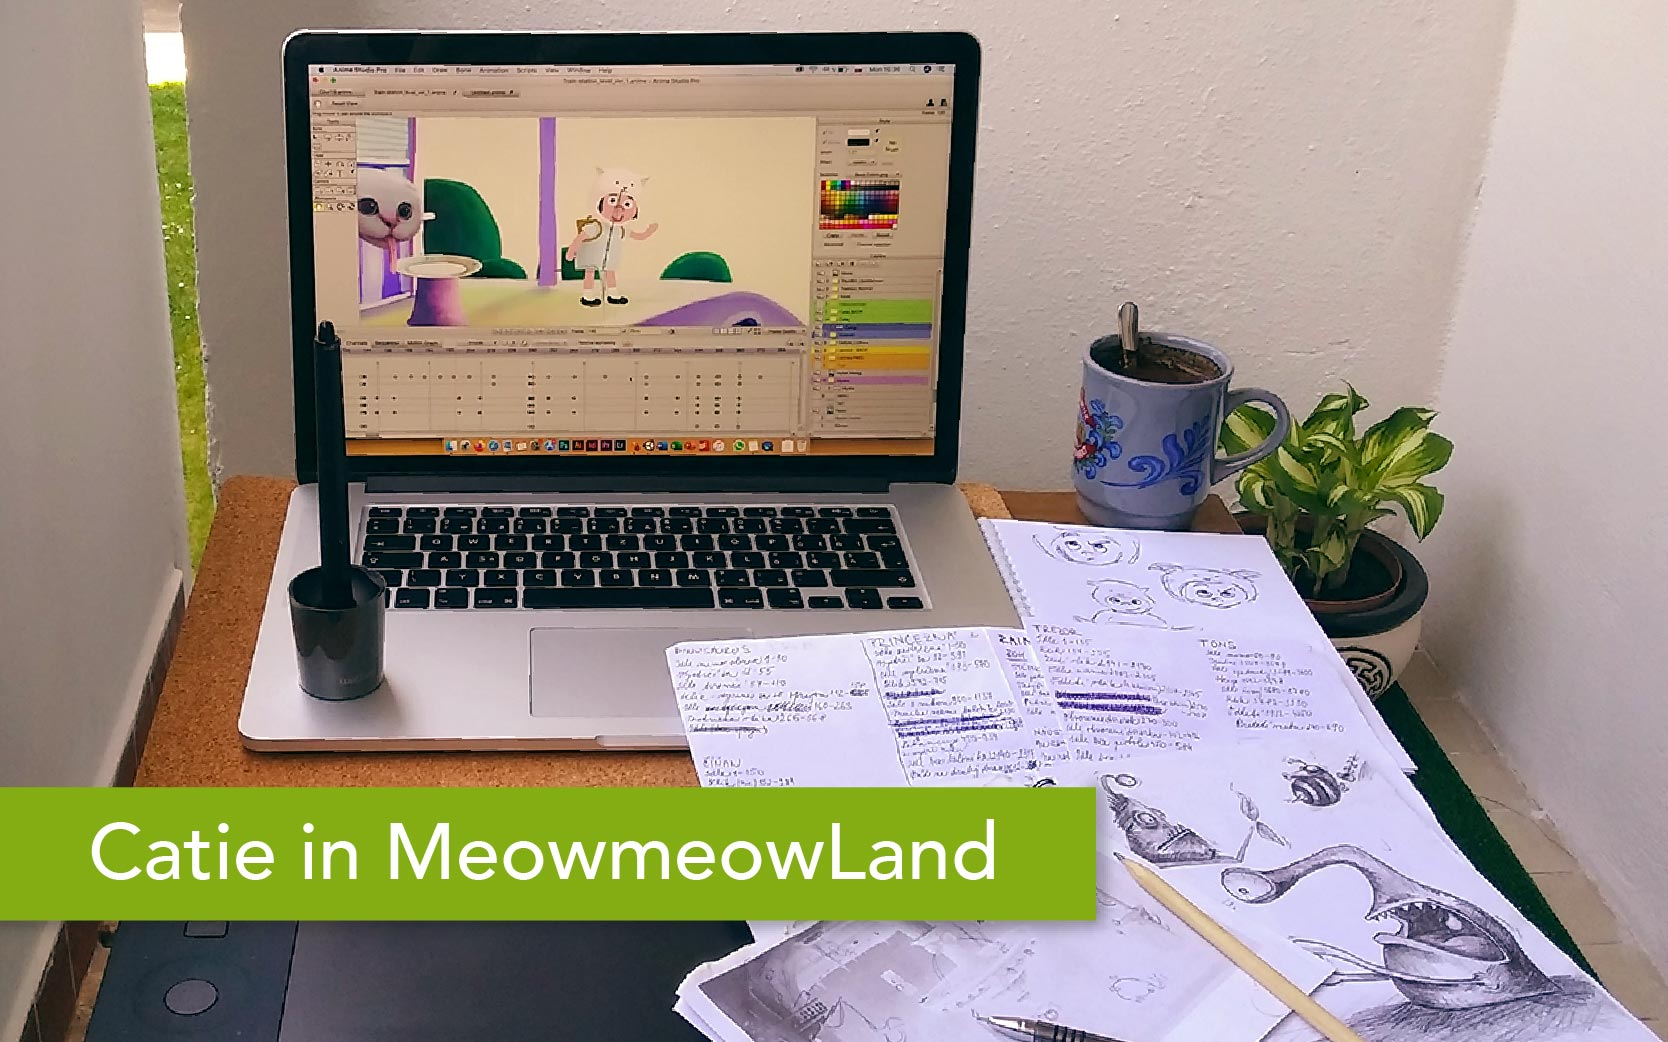 Catie in MeowmeowLand - Essential information about the point-and-click adventure indie game